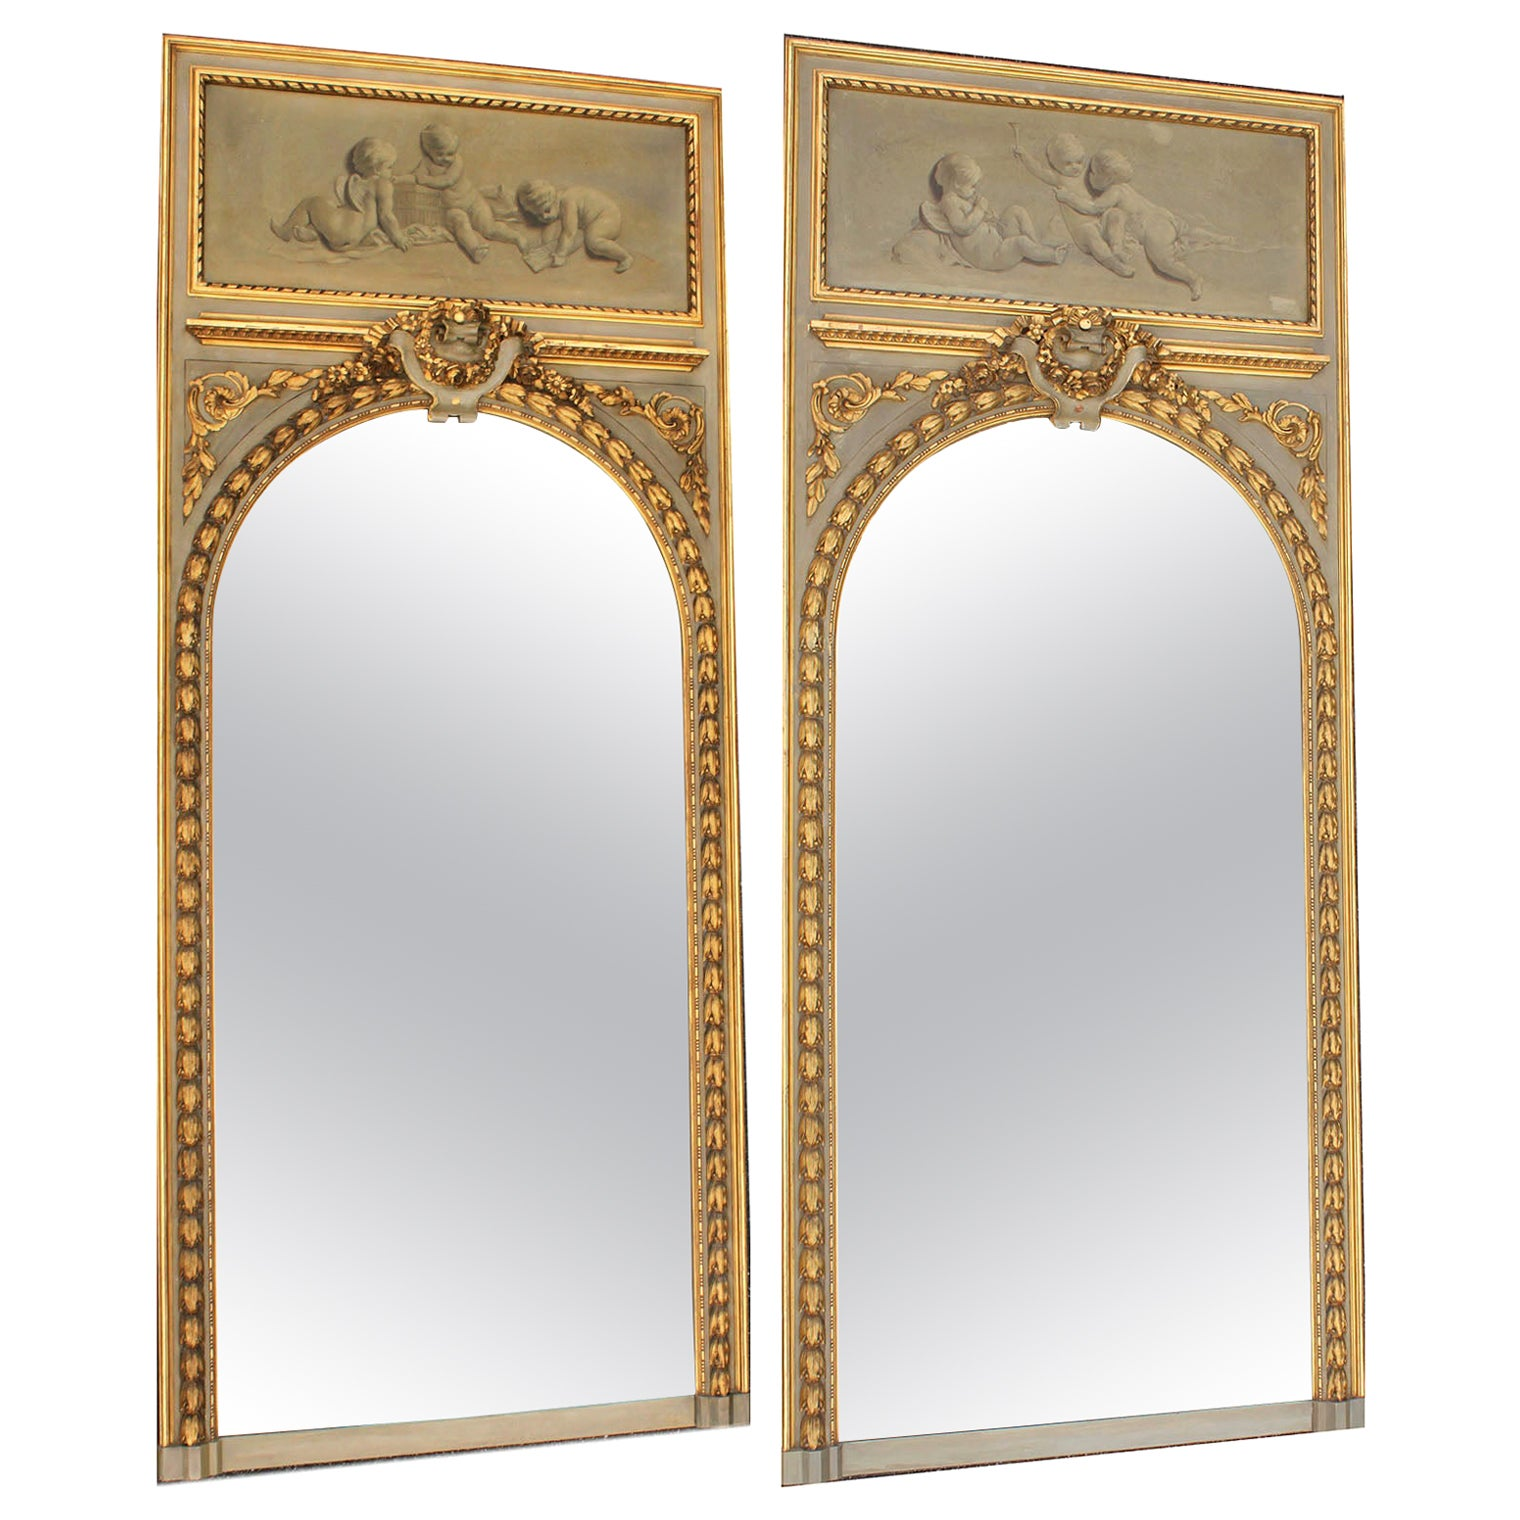 Pair of French 19th-20th Century Louis XV Style Giltwood Carved Trumeau Mirrors